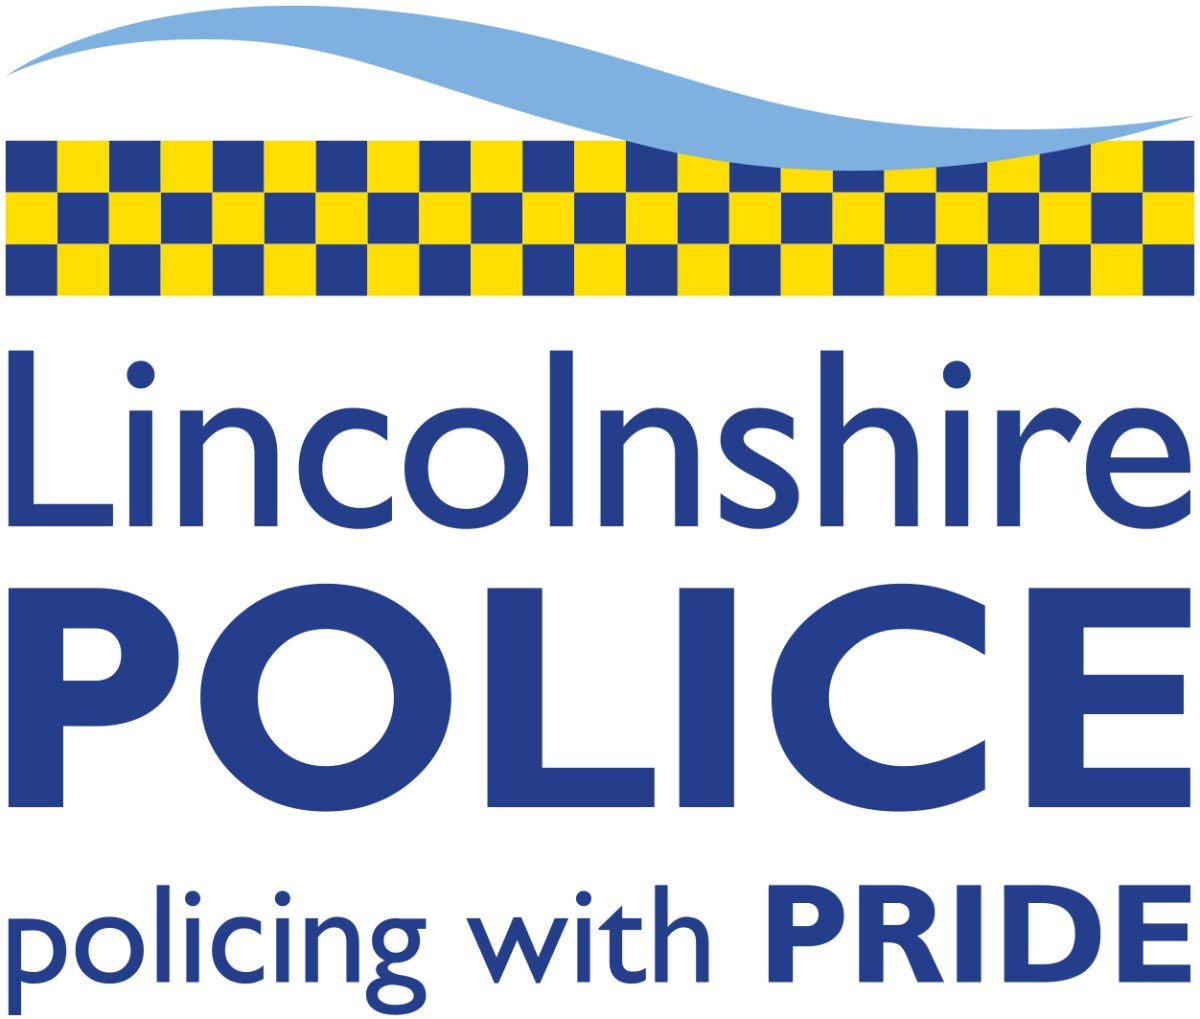 Five seriously injured in county crash - Lincolnshire Police